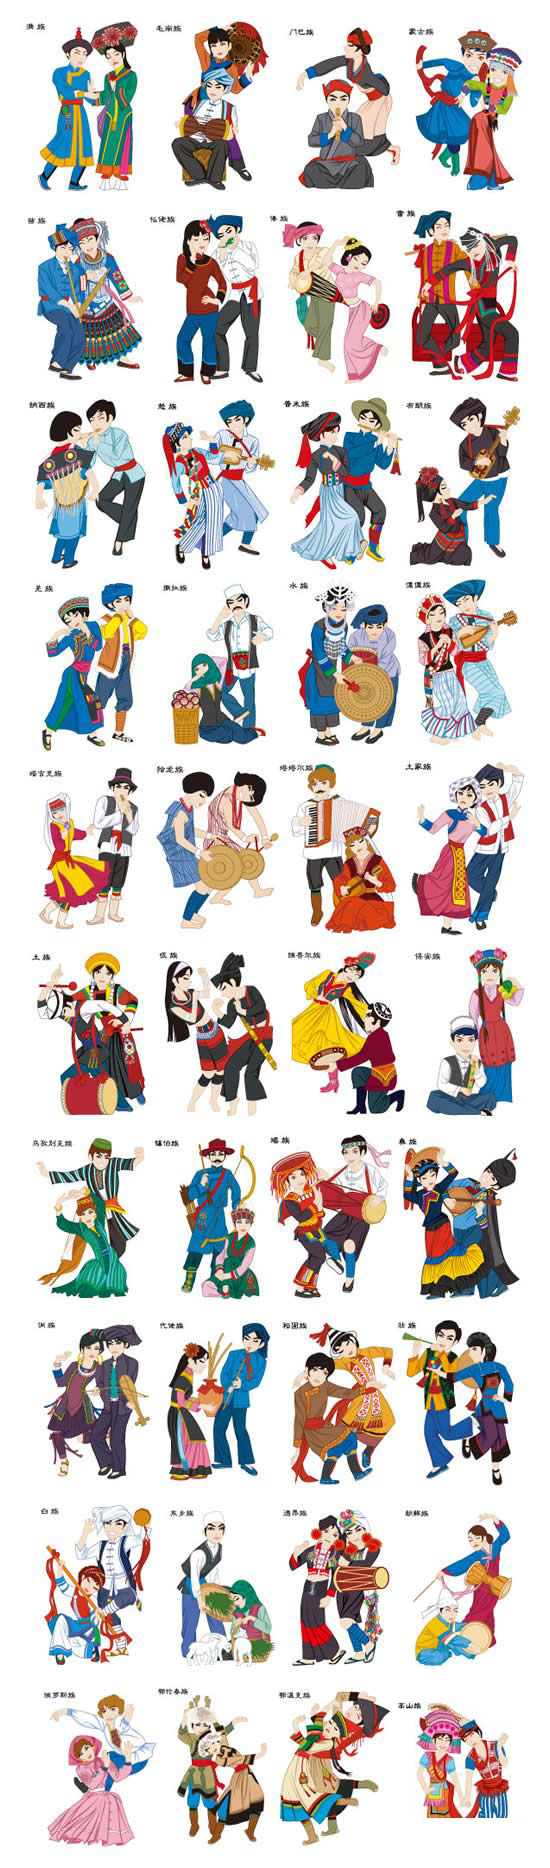 China's 56 ethnic groups singing and dancing people vector